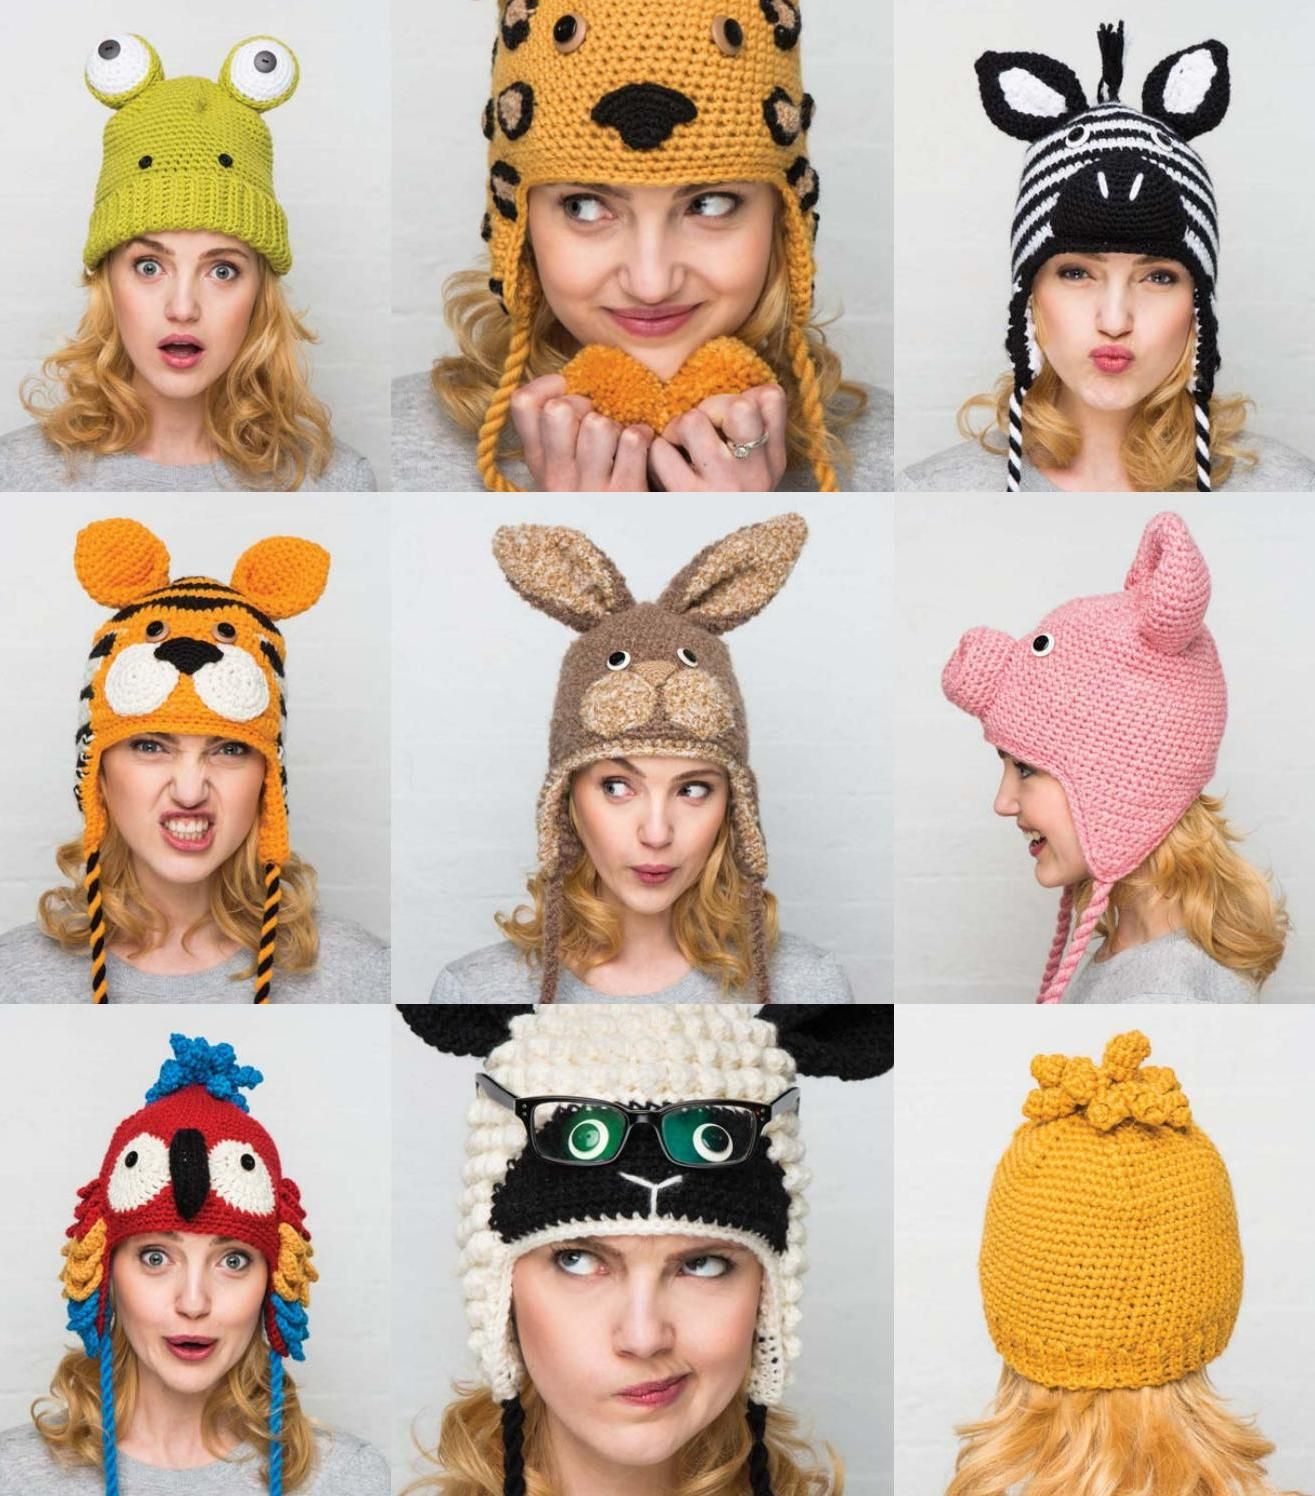 Crocheted animal hats 15 projects to keep you warm and toasty by Liên Huỳnh - issuu